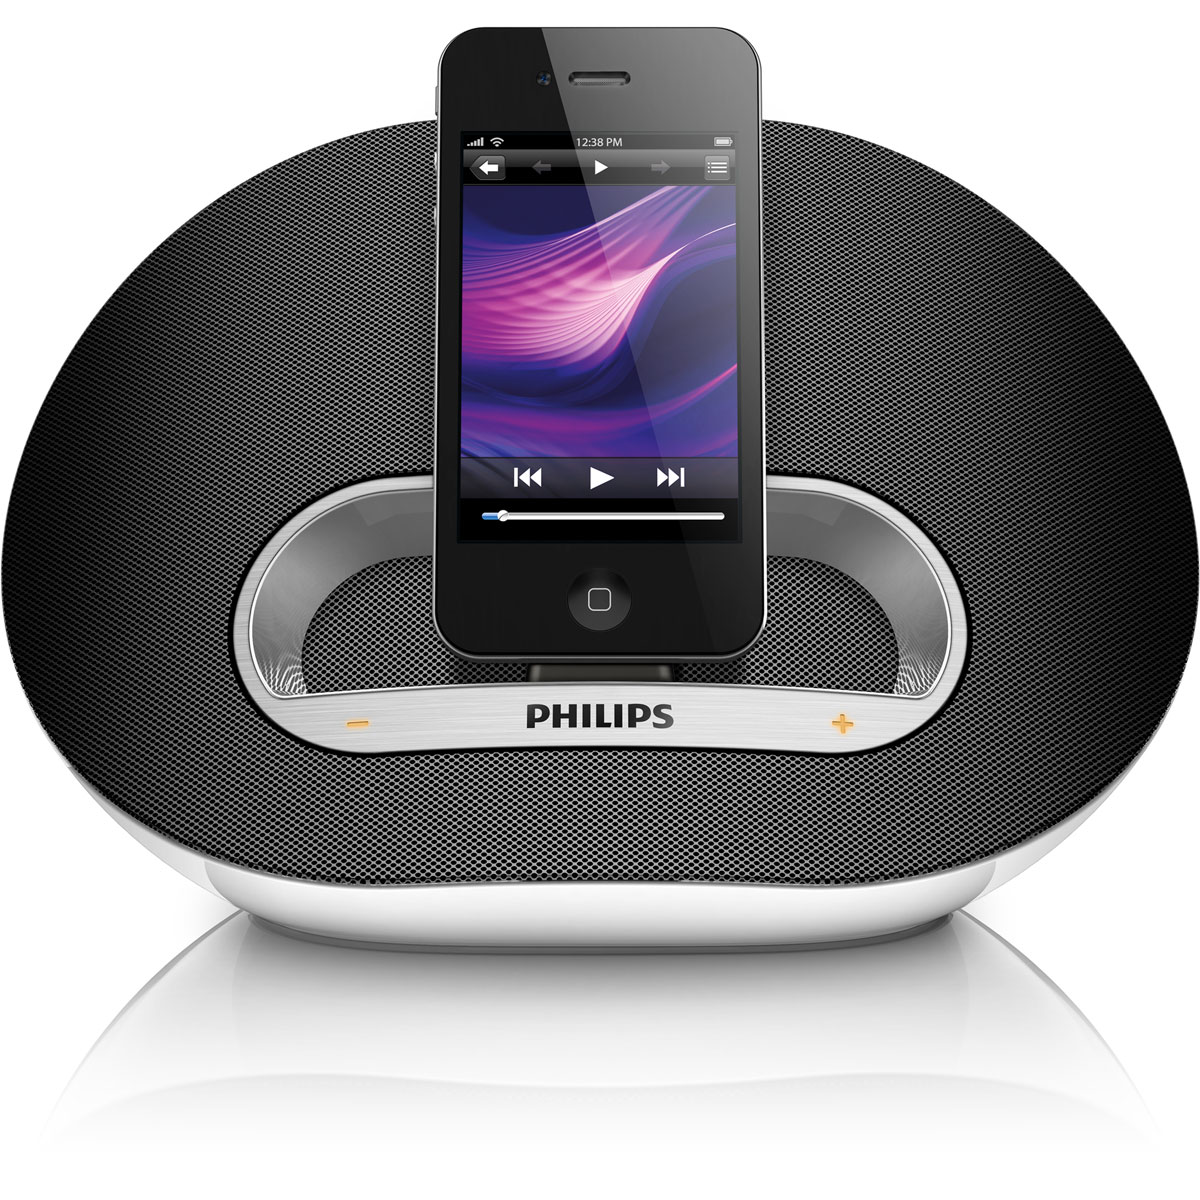 philips ds3100 dock enceinte bluetooth philips sur ldlc. Black Bedroom Furniture Sets. Home Design Ideas